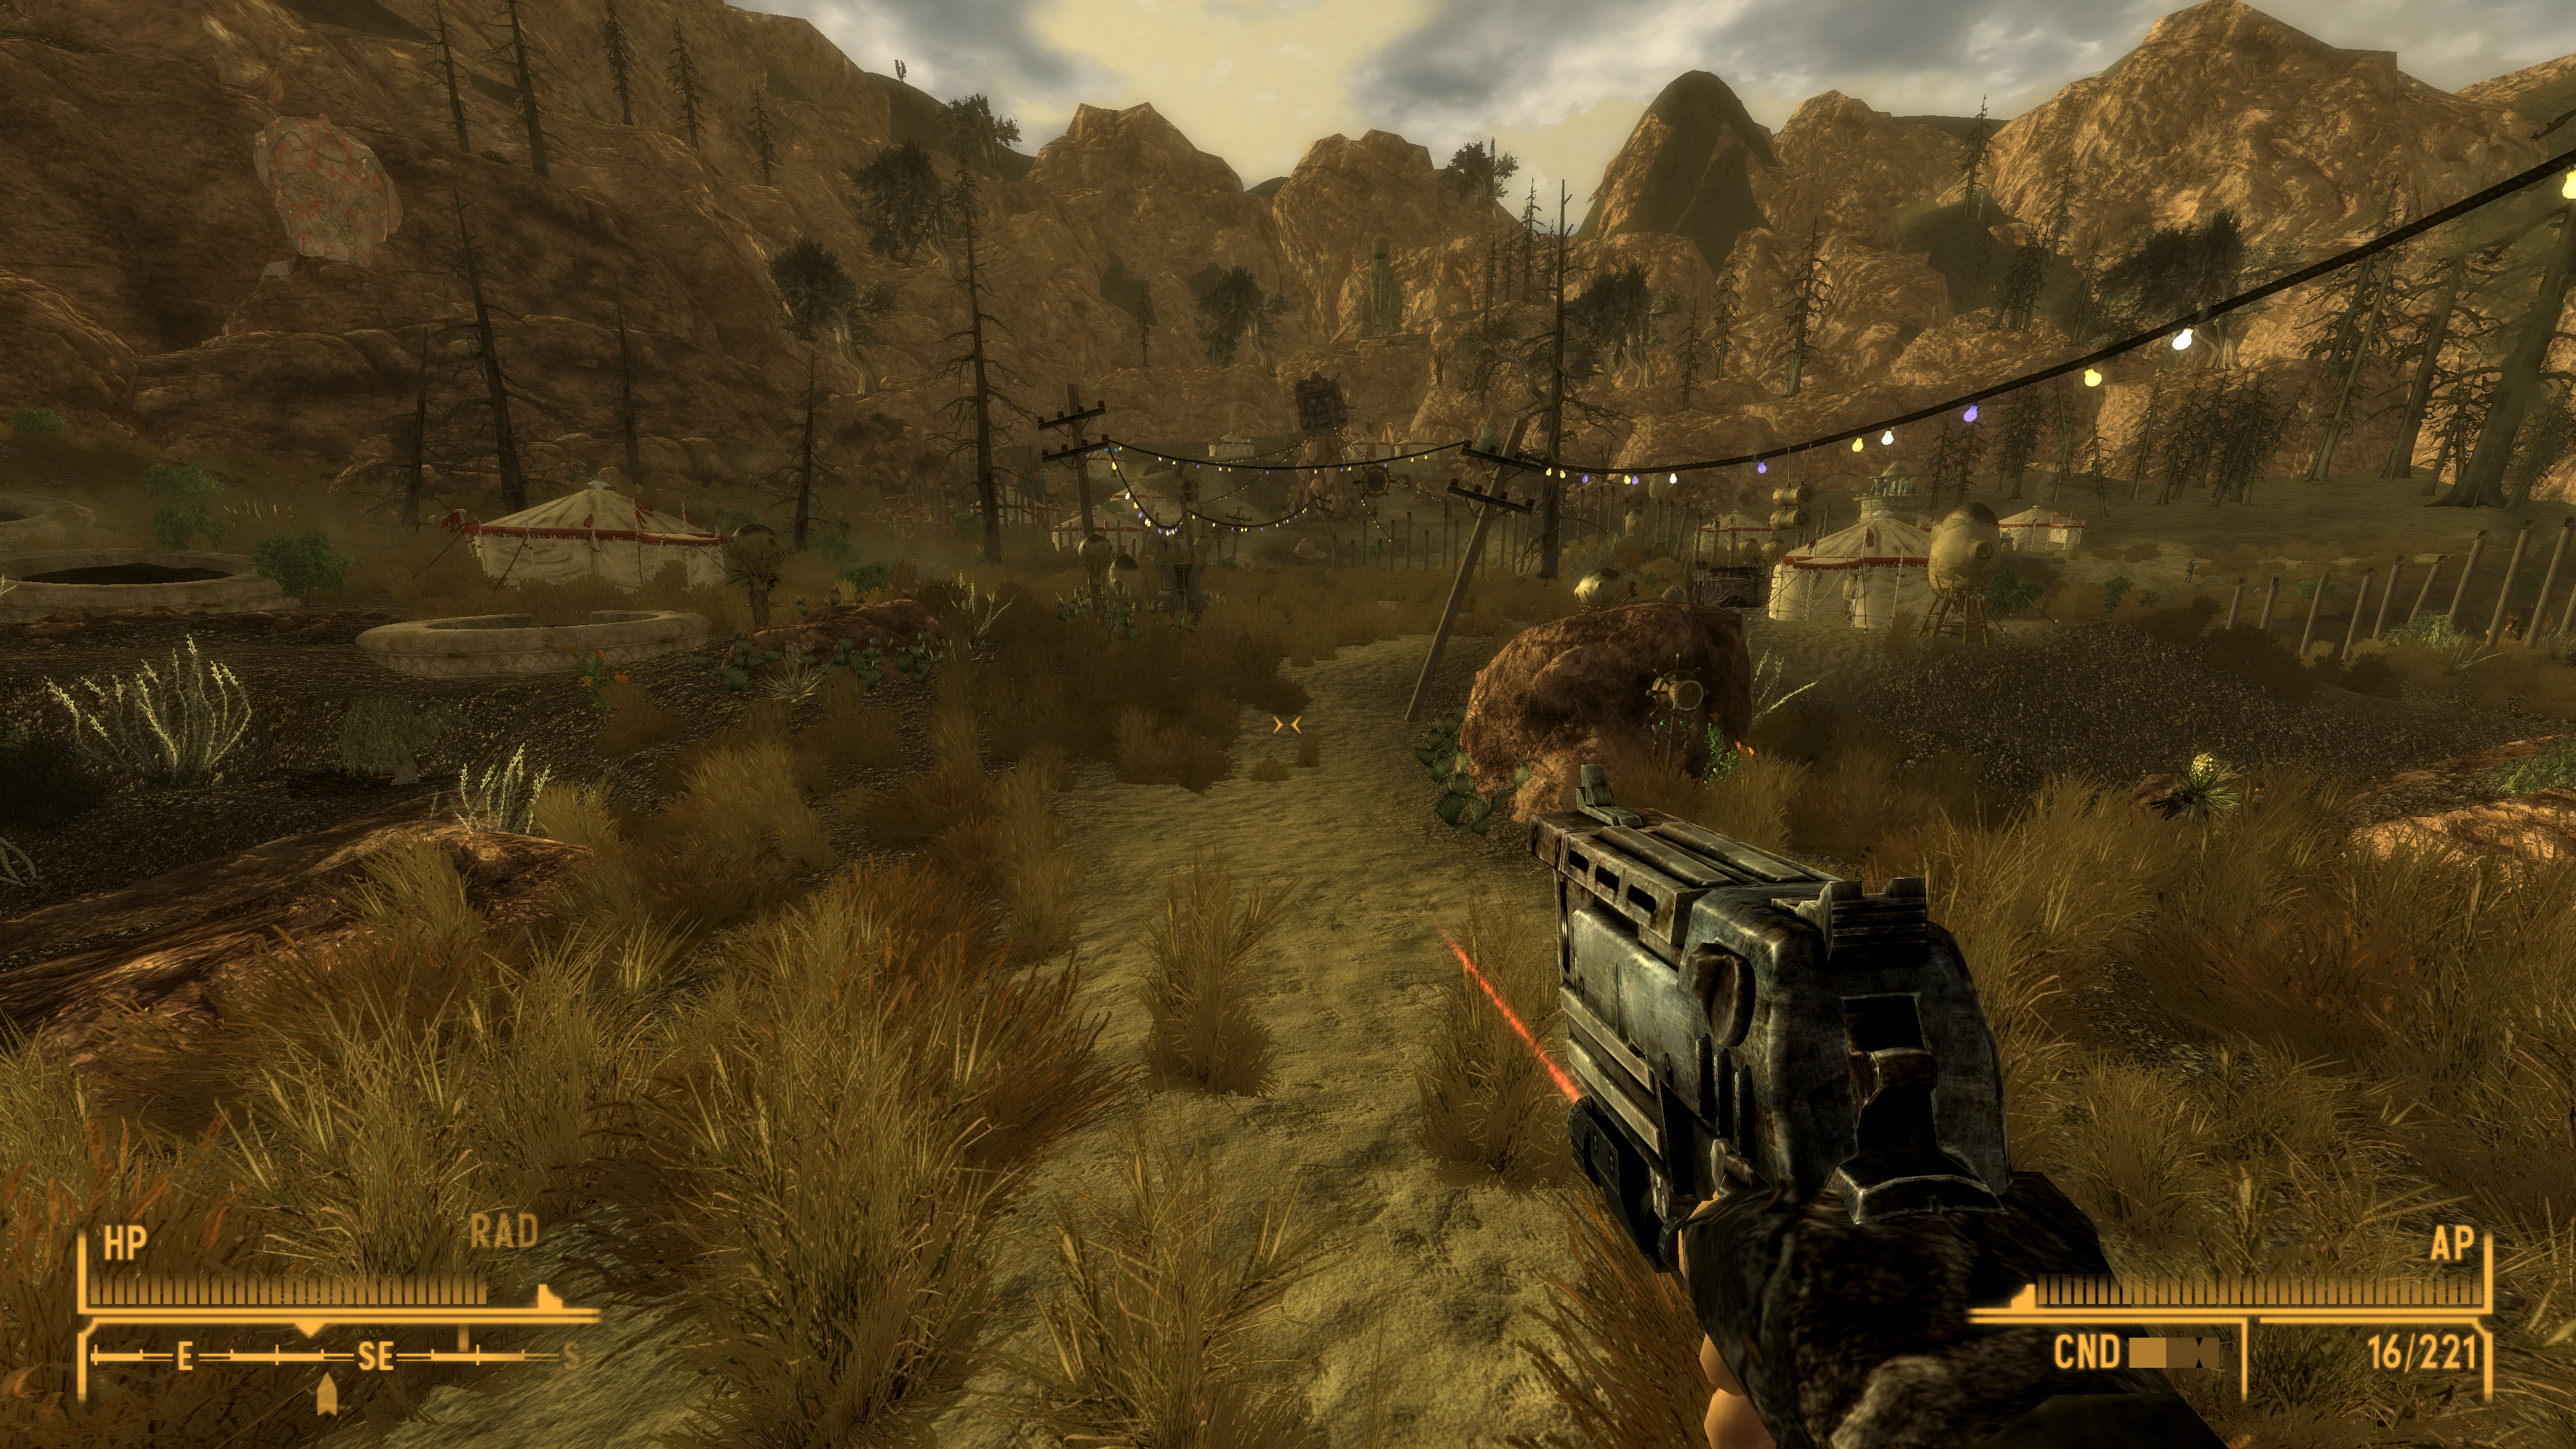 Fallout: New California is a fan made 30 hour RPG worthy of